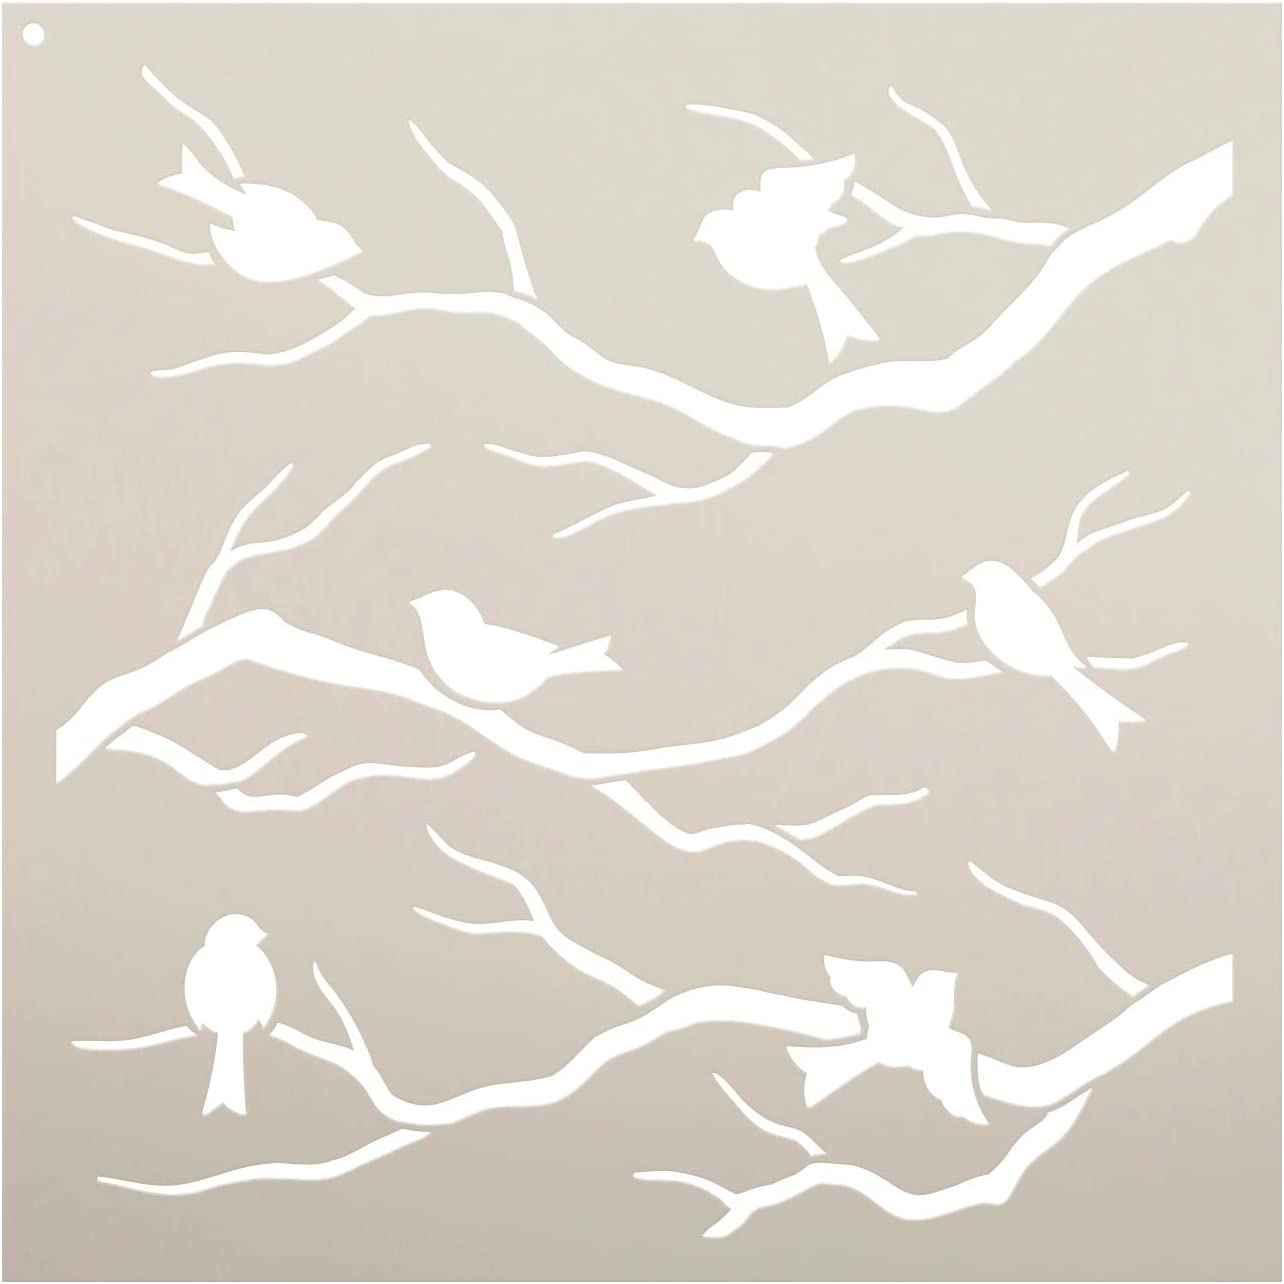 Birds & Branches Stencil by StudioR12 | Reusable Mylar Template | Crafters and Sign Makers can Paint DIY Nature Home Decor - Furniture - Scrapbook- Cards - Choose Size